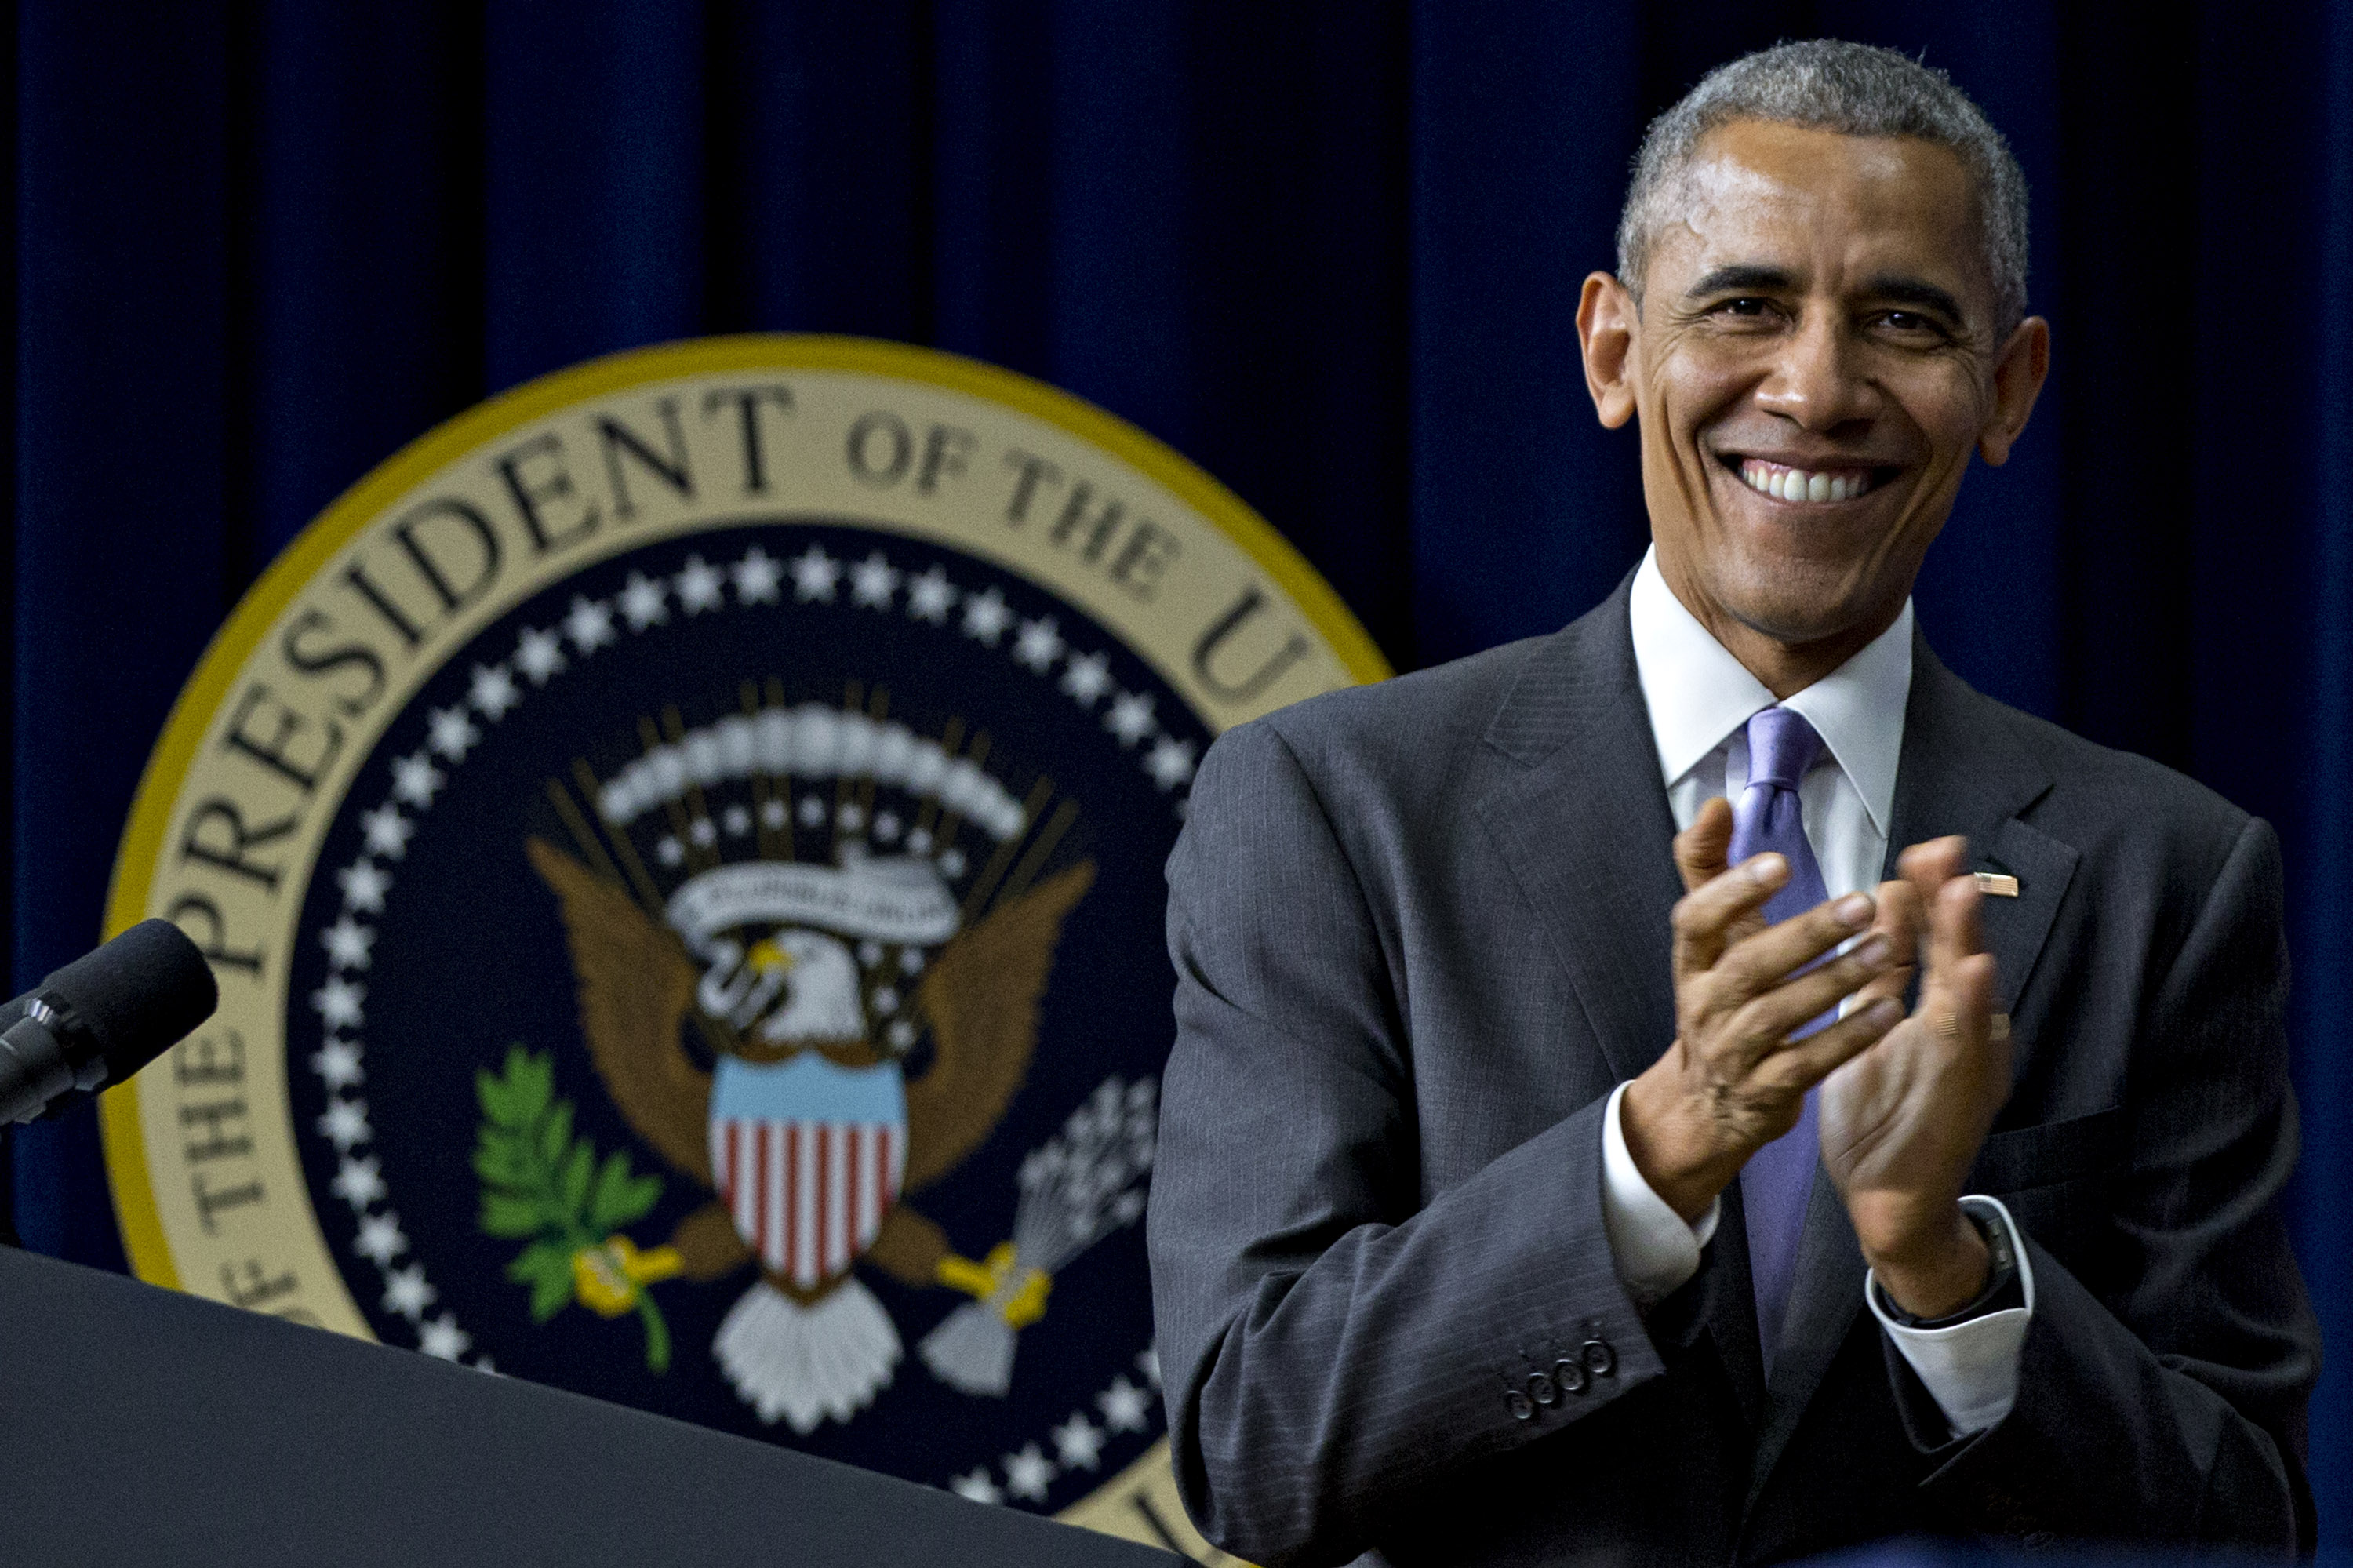 President Barack Obama Signs 21st Century Cures Act